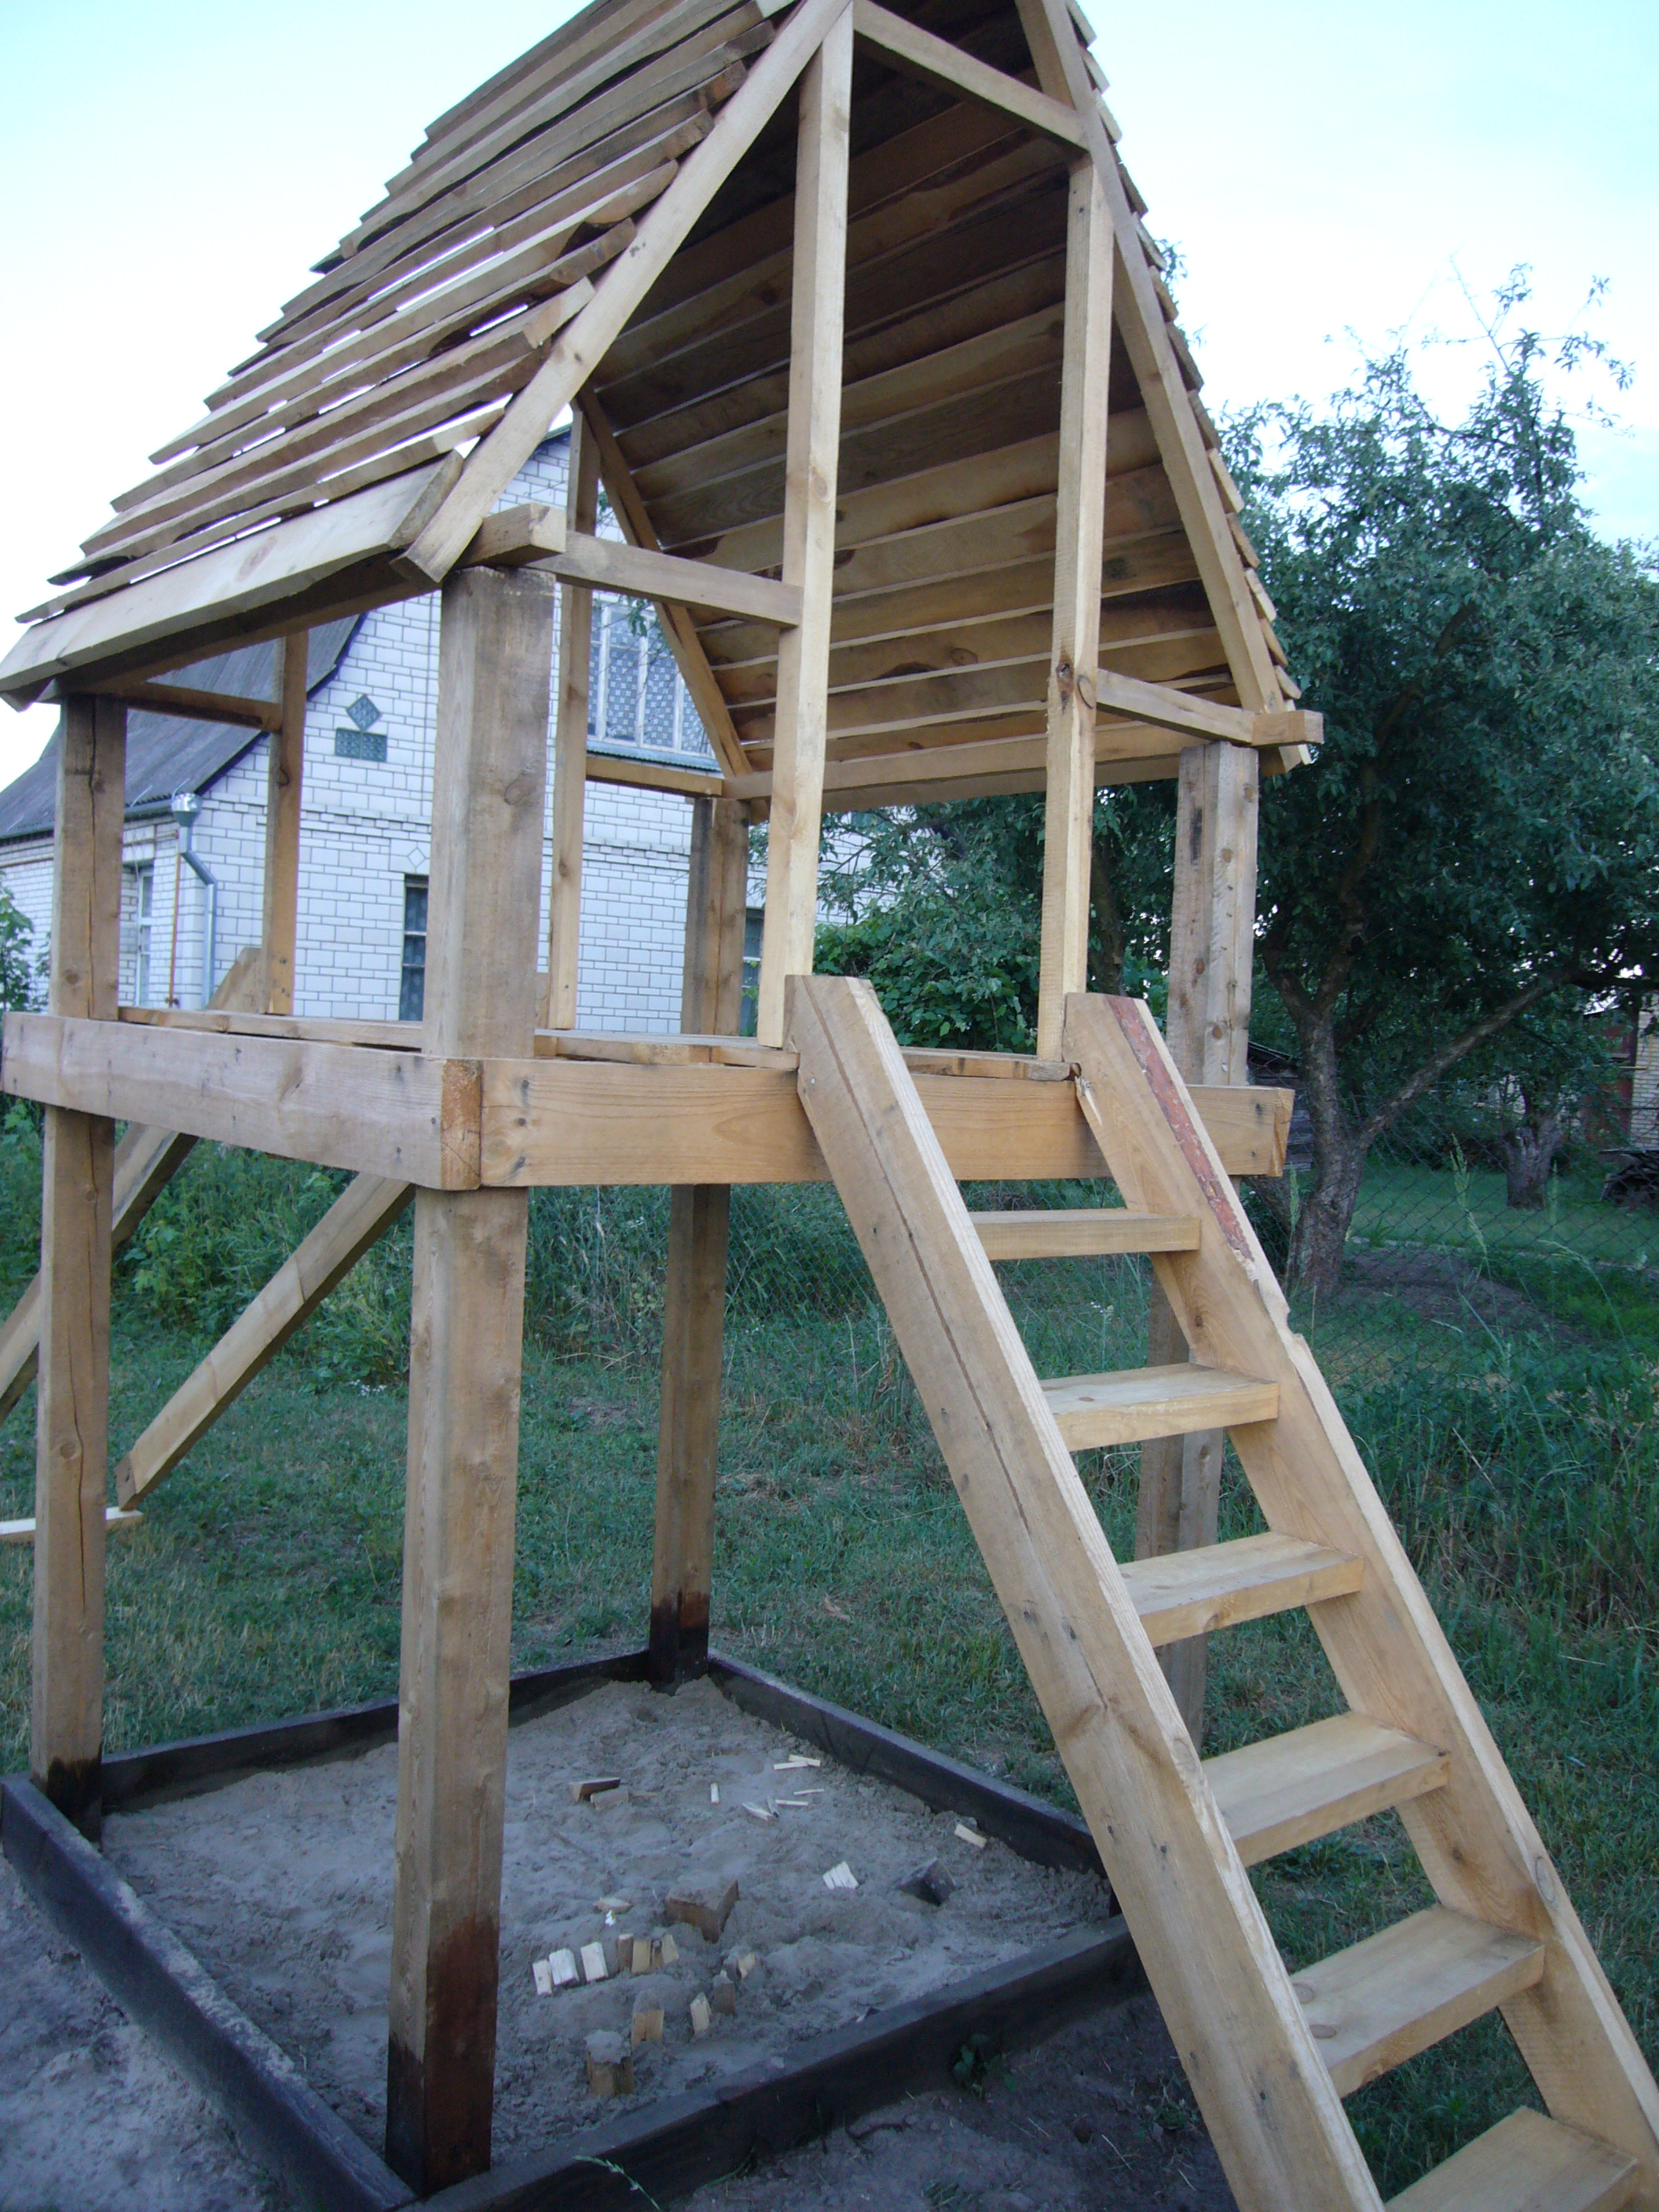 Diy project wood playhouse with slide diy crafts How to build outdoor playhouse